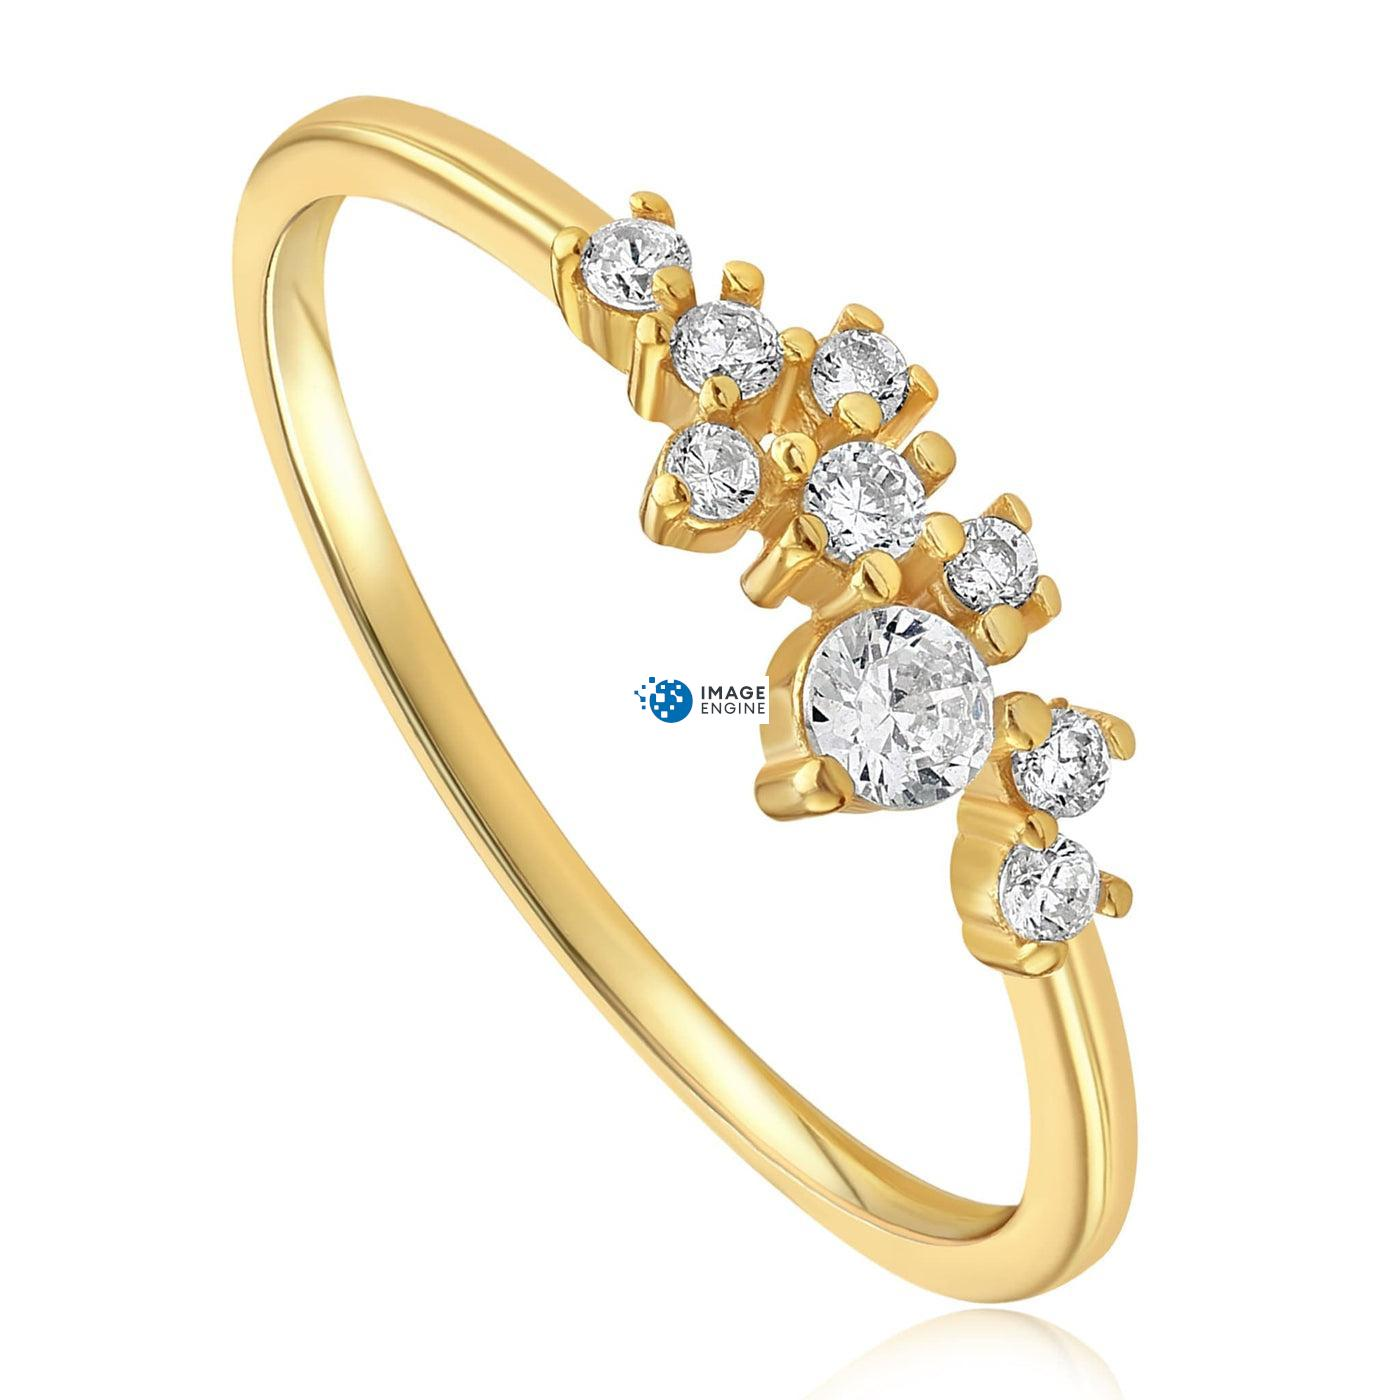 Sasha Sparkle Ring - Three Quarter View - 18K Yellow Gold Vermeil